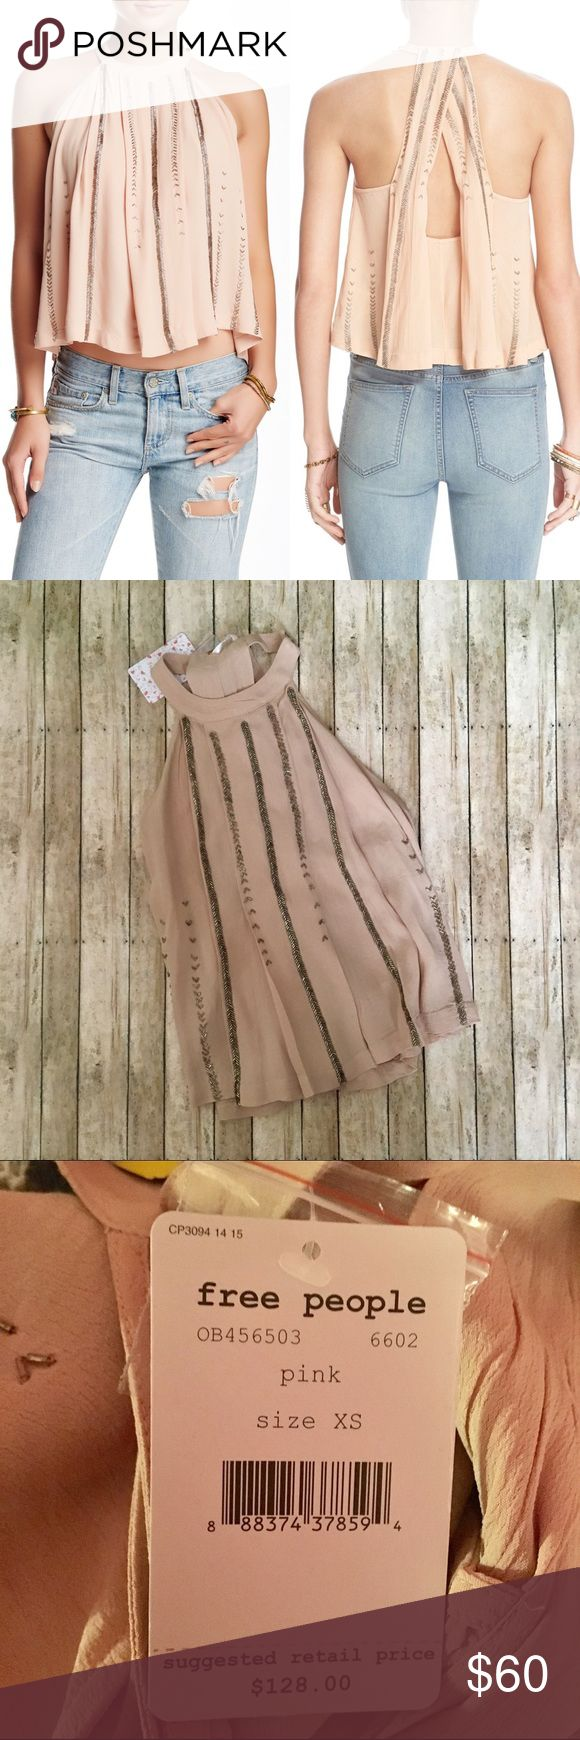 """❗️SALE TODAY Free People Shimmer and Shine TankTop • NWT • Size XS • Very pretty light pink color with beaded embellishments • Halter top with racerback • Pleated and crepe like material • Dual button neck line closure • Approx. 21"""" length • 100% rayon • Free People Tops Tank Tops"""